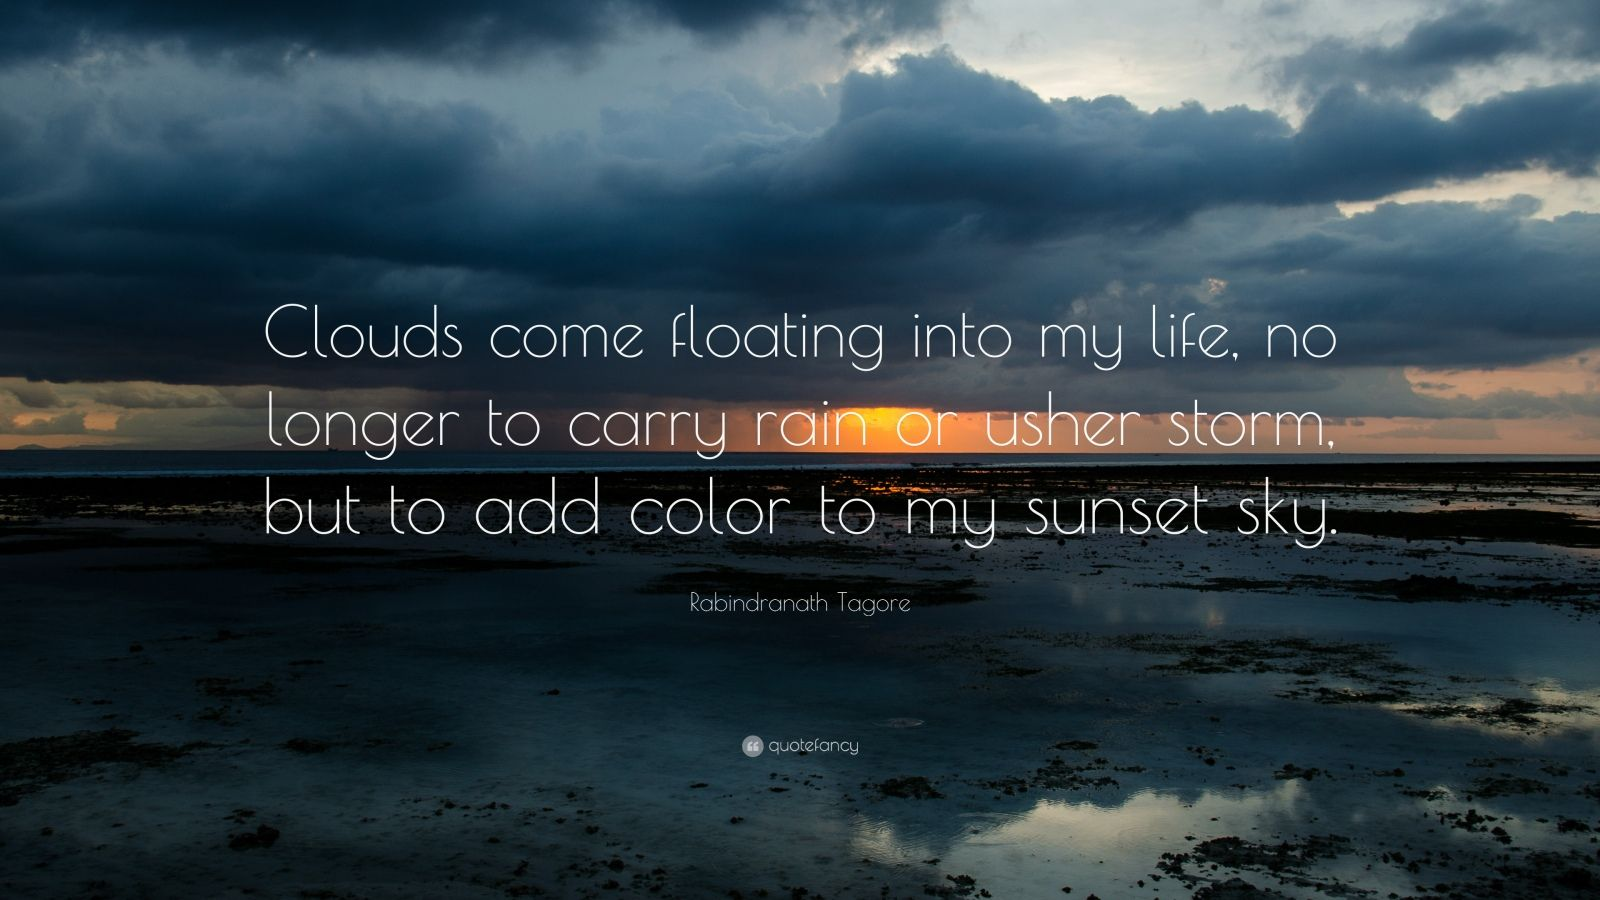 """Rabindranath Tagore Quote: """"Clouds come floating into my life, no longer to carry rain or usher storm, but to add color to my sunset sky."""""""